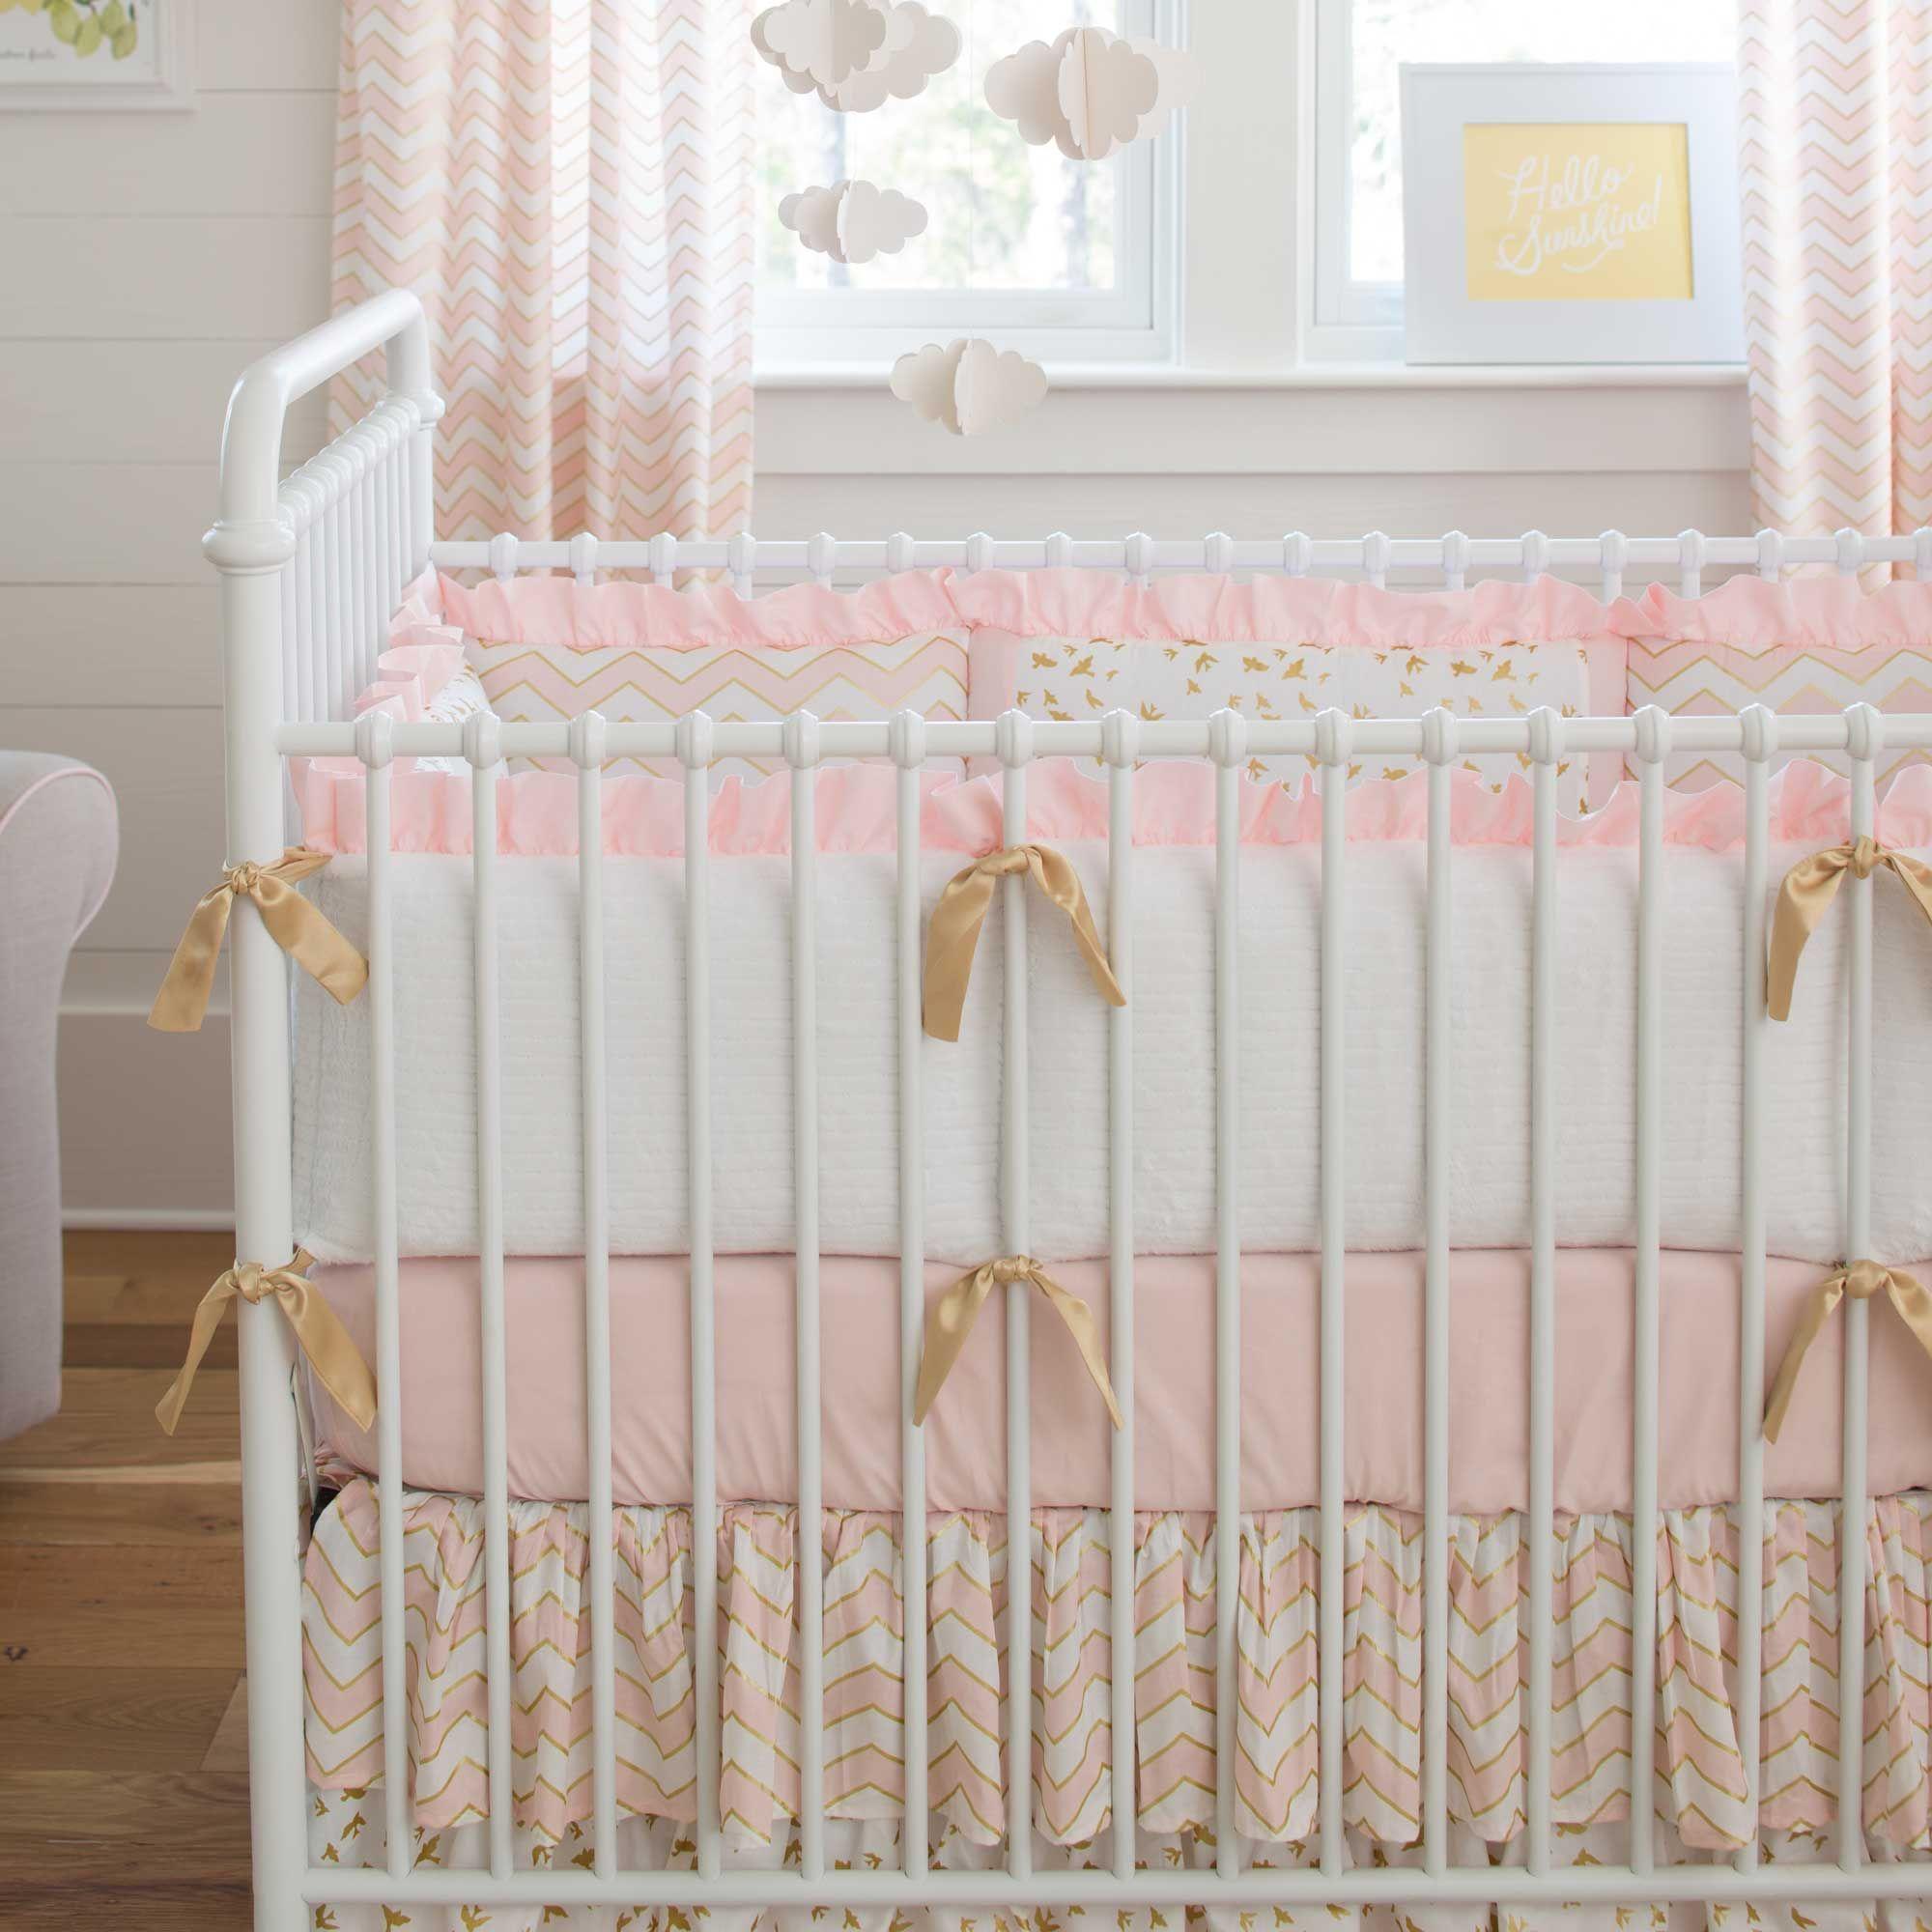 elephant gray the nursery bedroom gallery bedding baby cribs selection crib boy woodland and images teal gold room pink skirt of blanket for best sets girl